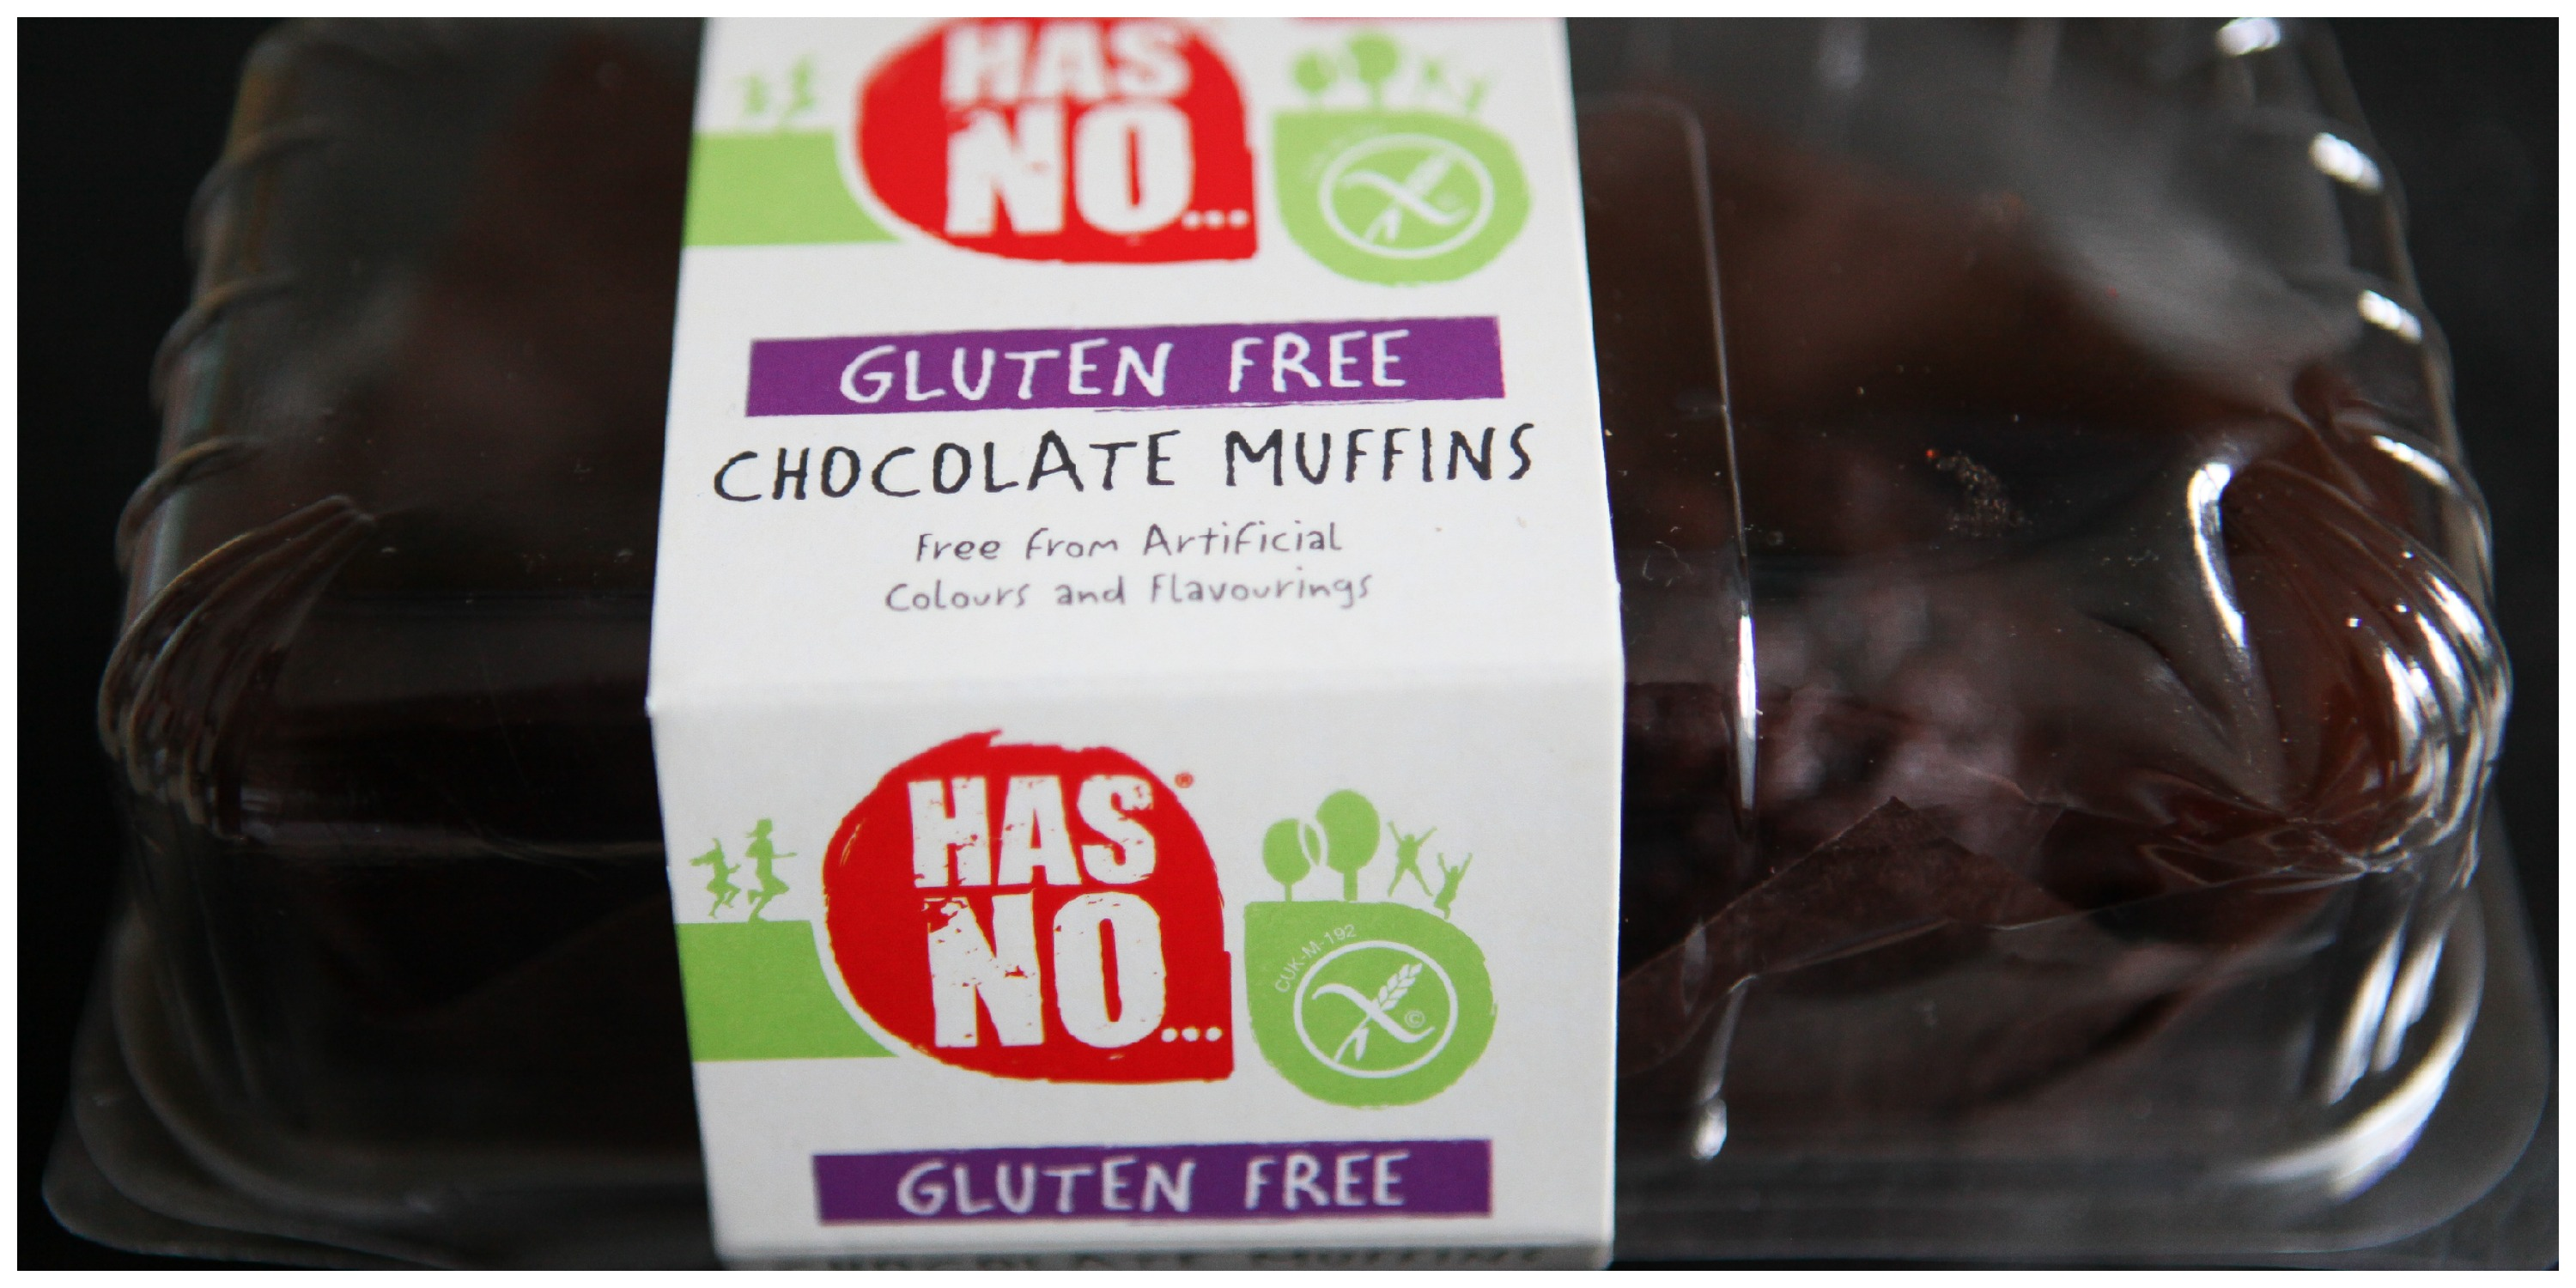 Has No: Gluten Free Muffins by Aldi | A Home Made By Committee